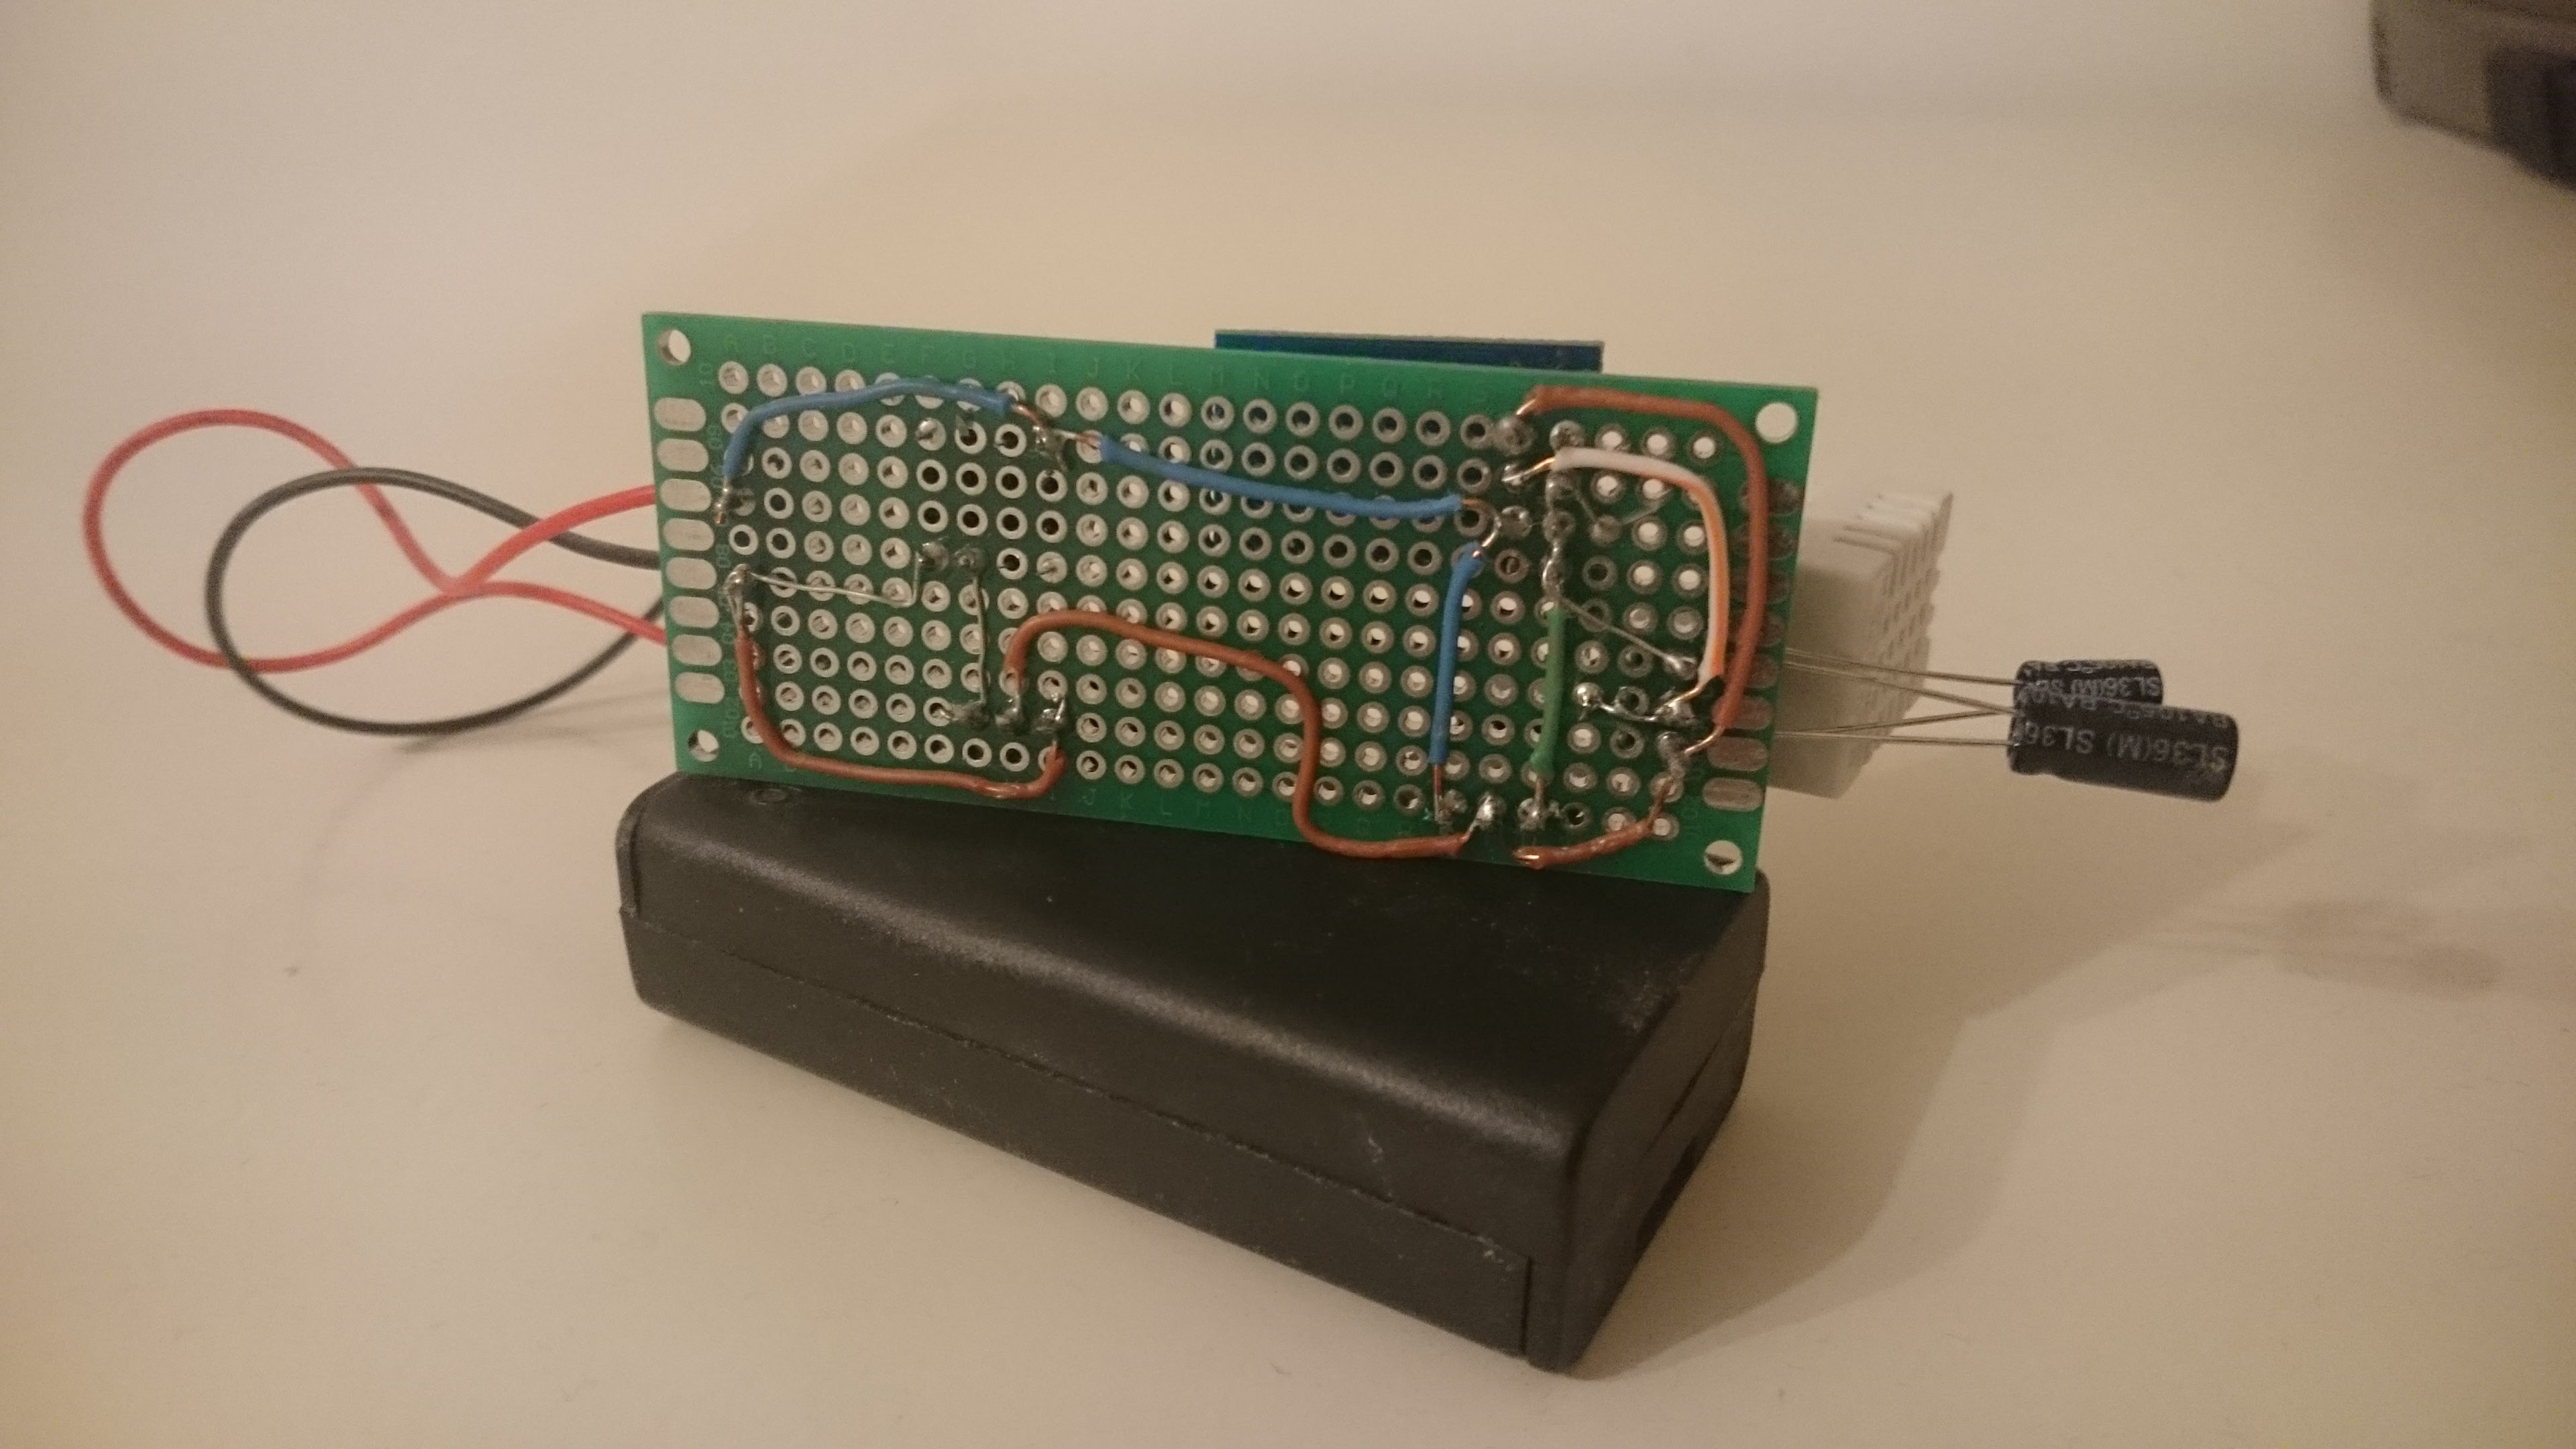 Battery Powered ESP8266 IoT - Temperature Sensor - Home Circuits